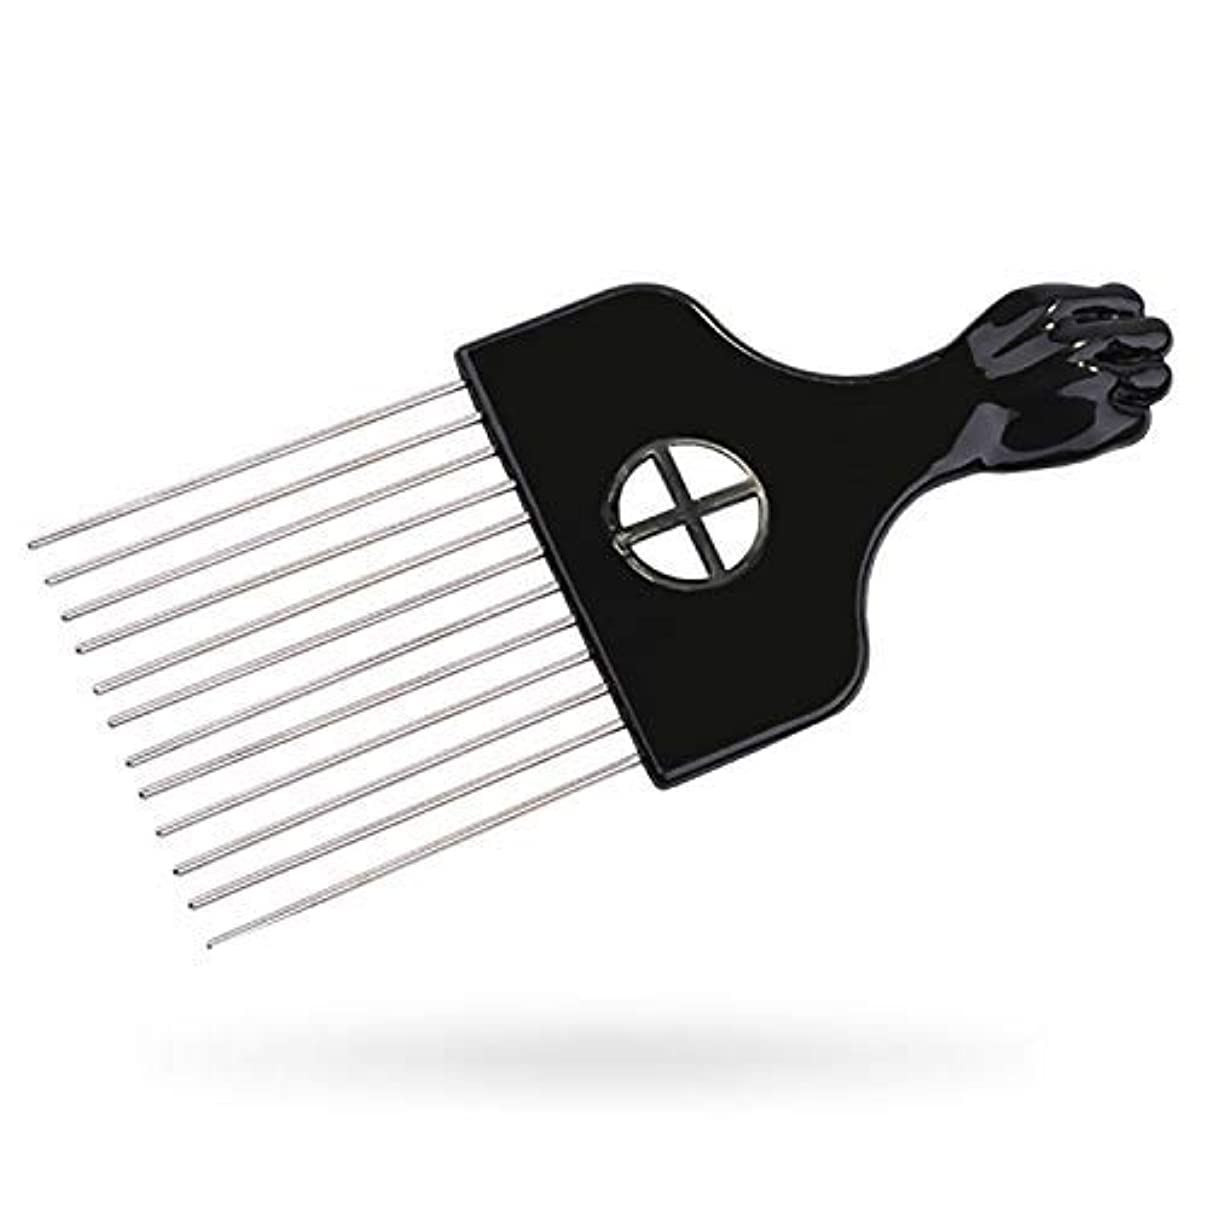 乱雑な速度哲学博士Afro Pick, Hair Pick, Metal Pick Comb, Detangle Wig Braid Hair Styling Comb, Hair Brush(1 pack) [並行輸入品]